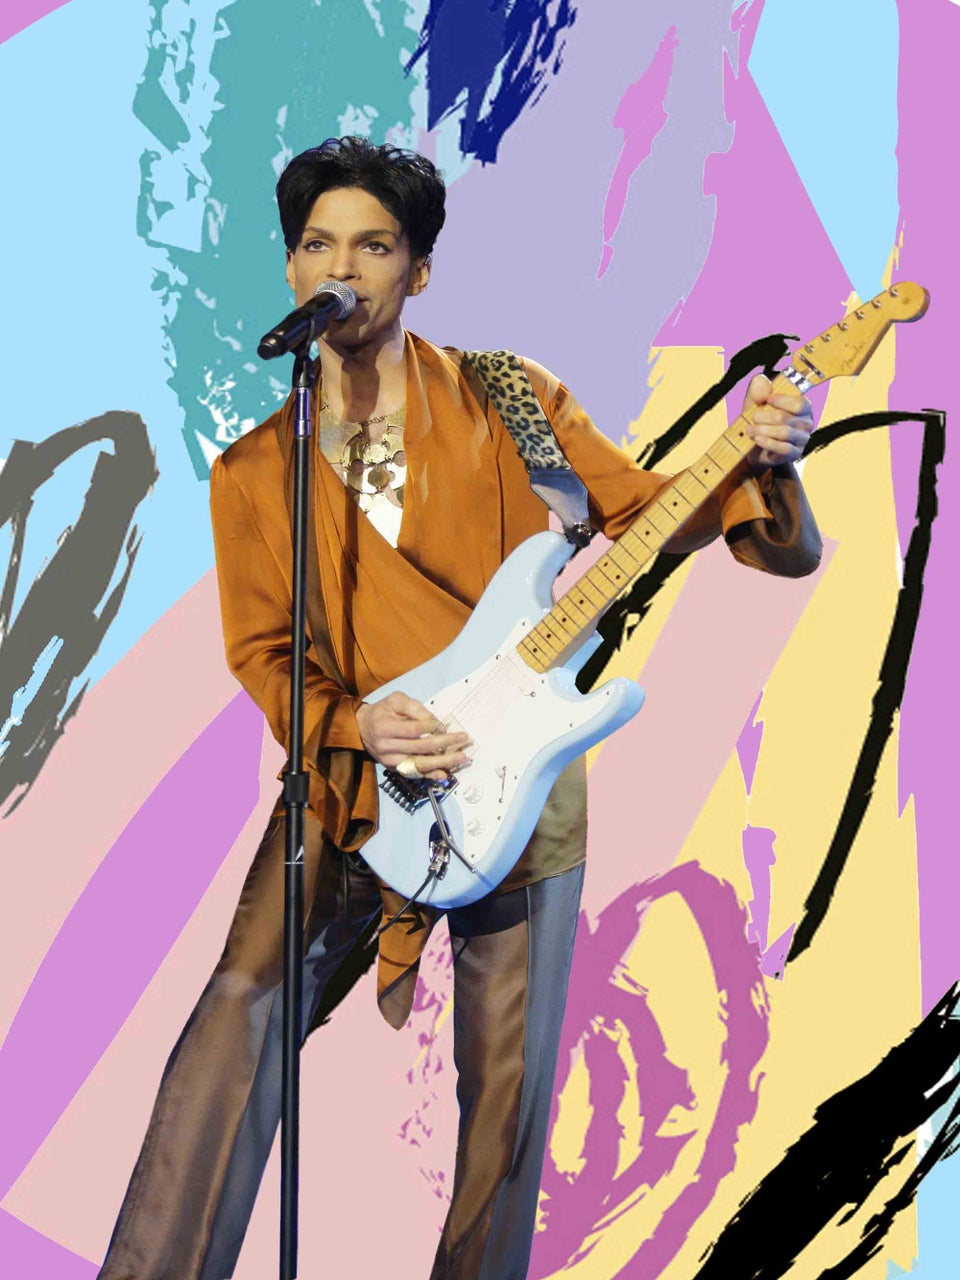 Prince's Estate Announces Special Concert Featuring Unreleased Material